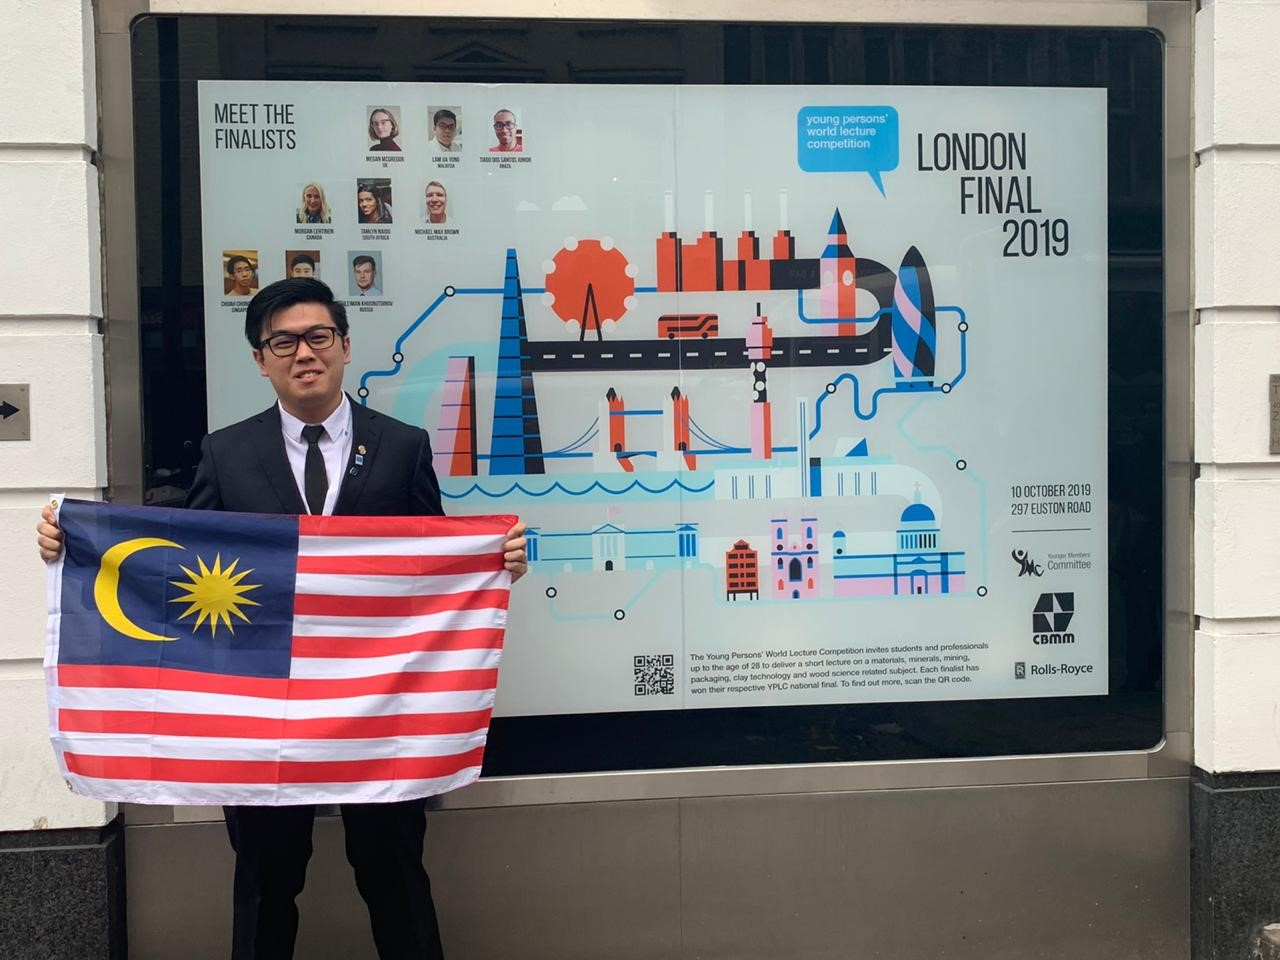 Jia Yong with the Jalur Gemilang in front of the Institute of Materials, Minerals and Mining (IOM3)